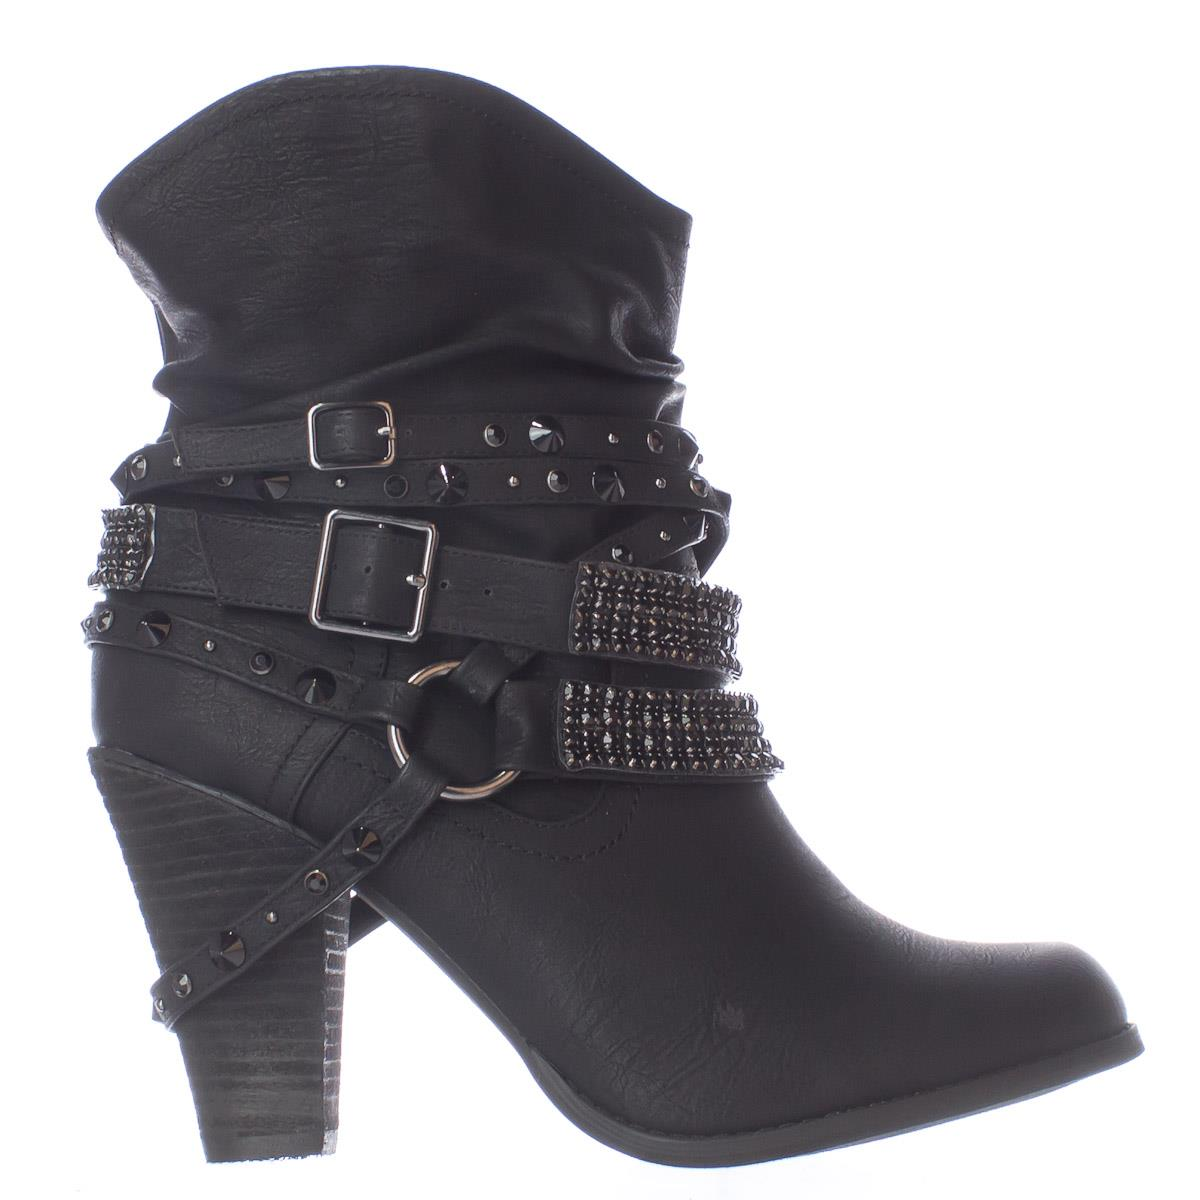 df968b00c1cb Not Rated - Womens Not Rated Swalini Multi Studded Straps Ankle Boots -  Black - Walmart.com